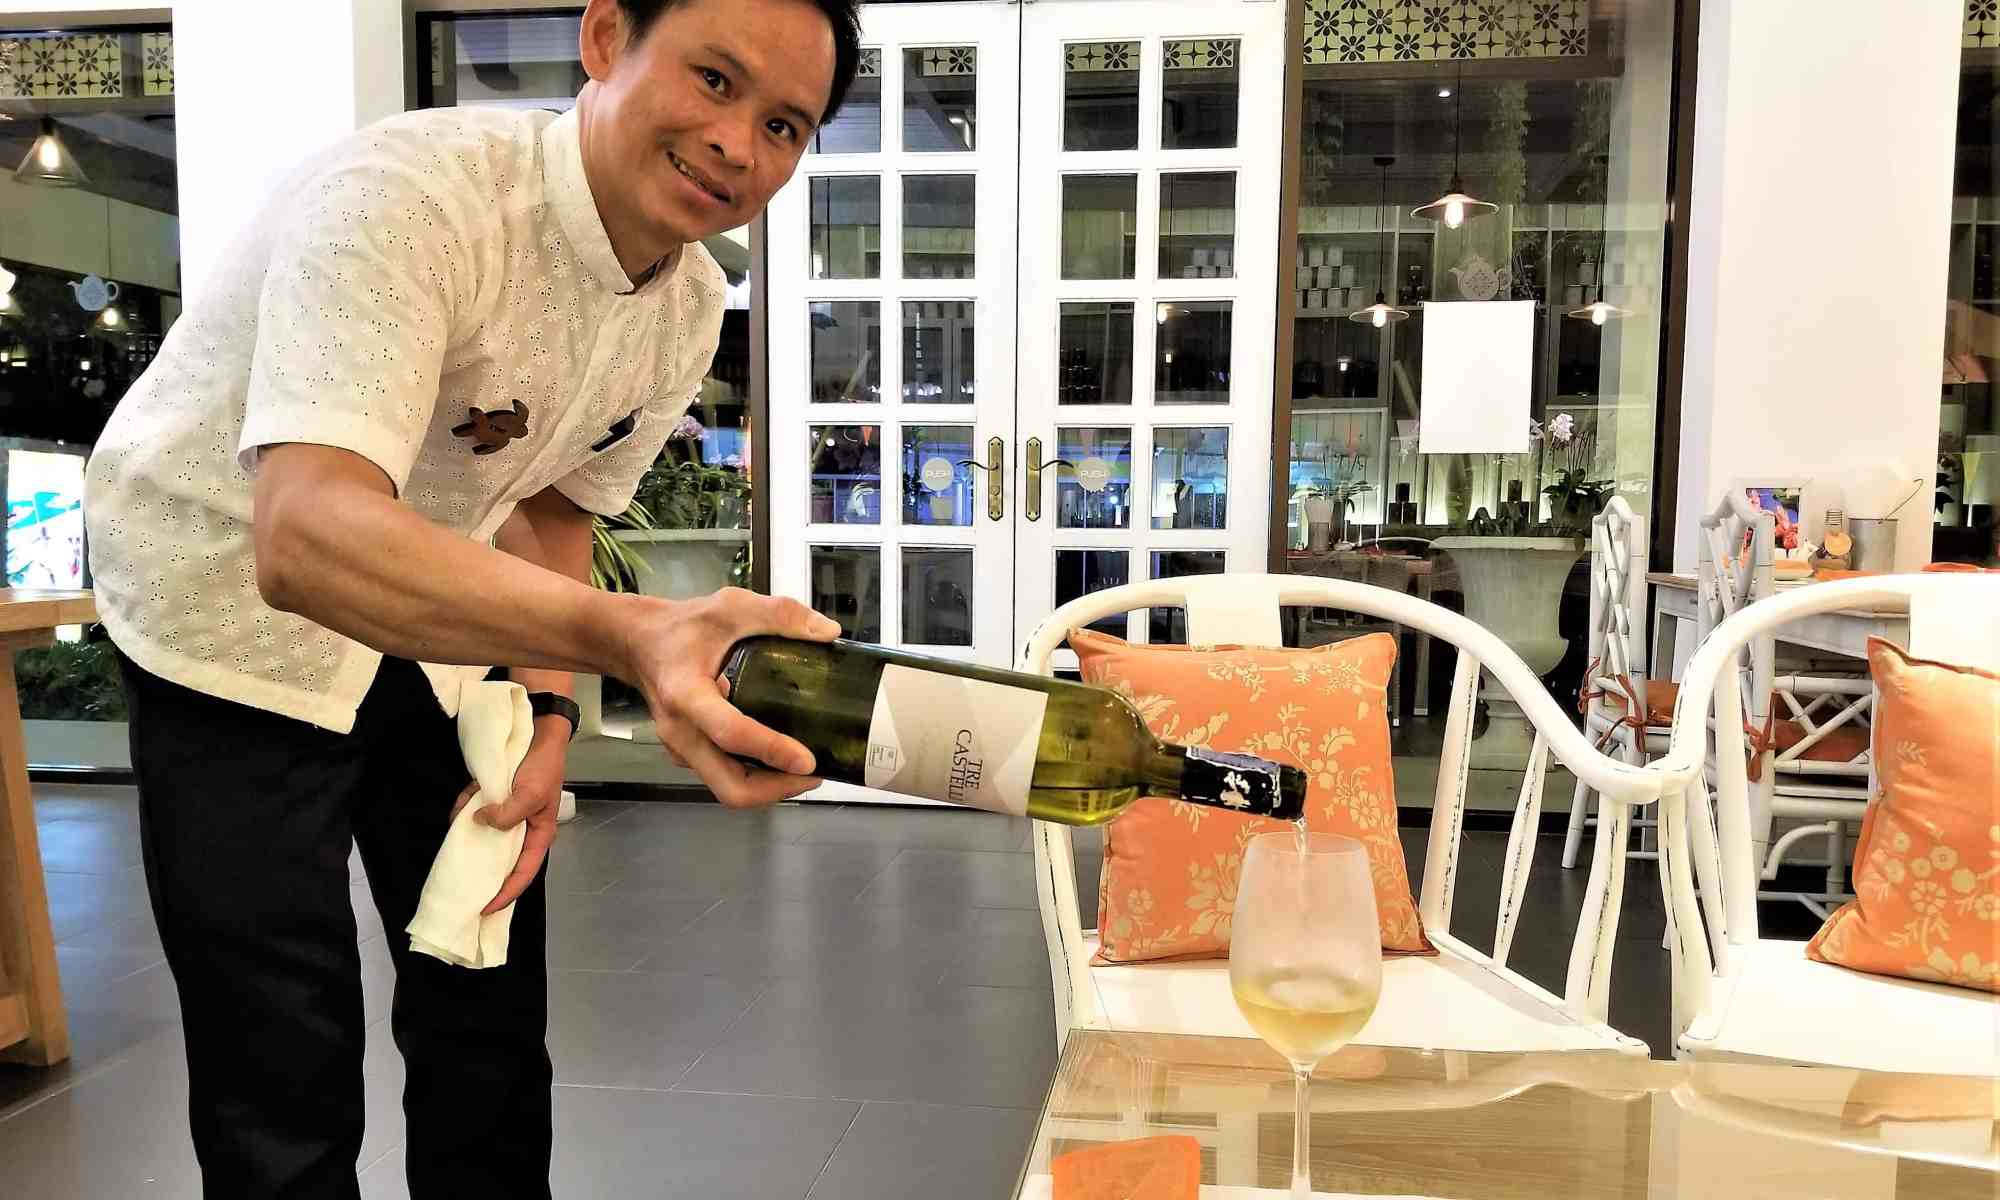 image-of-waiter-pouring-wine-at-ang-ku-tea-house-at-proud-phuket-hotel-thailand